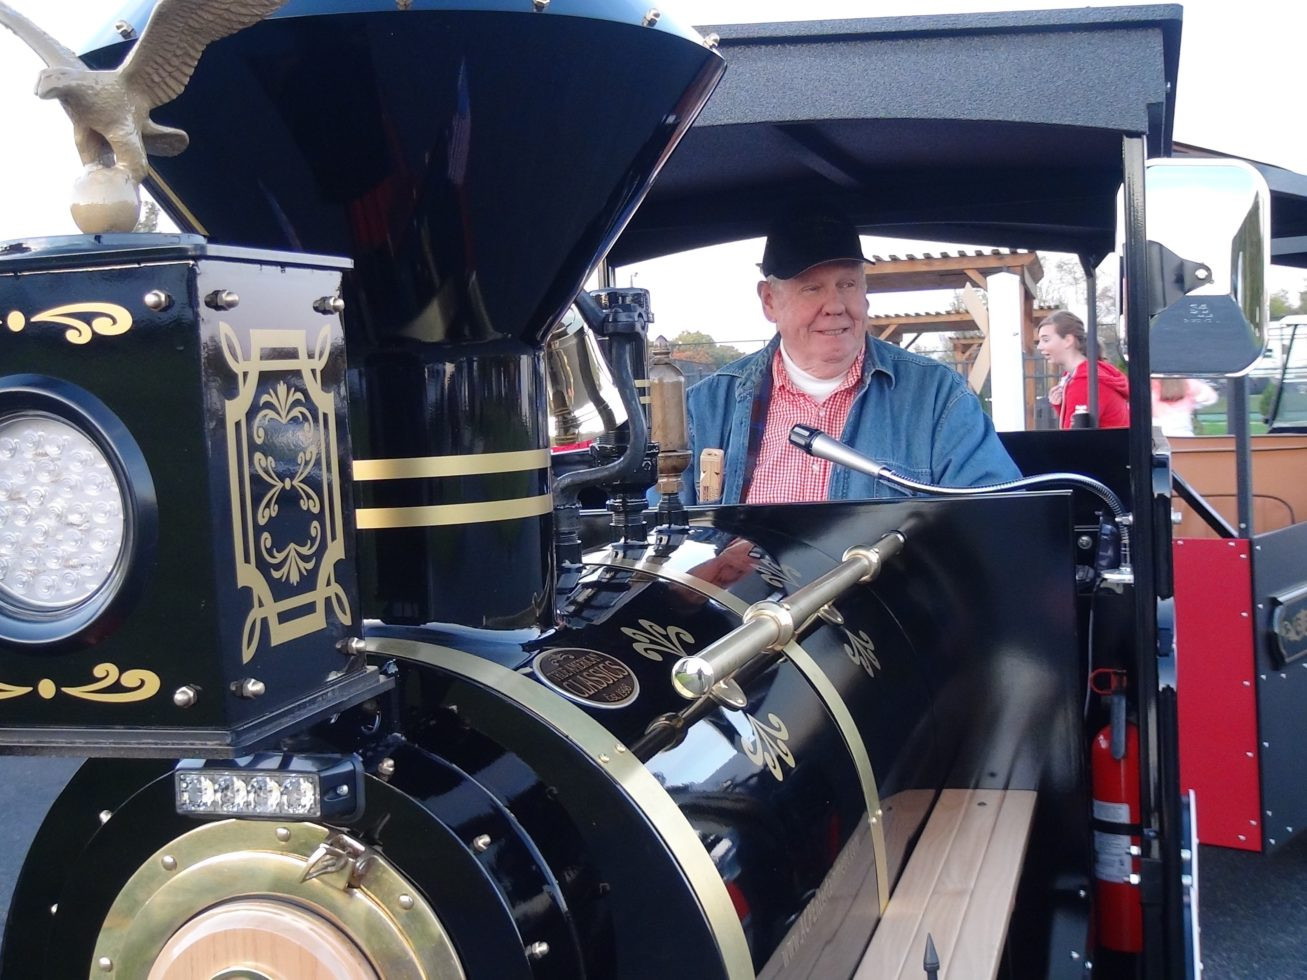 Conductor driving Trackless train